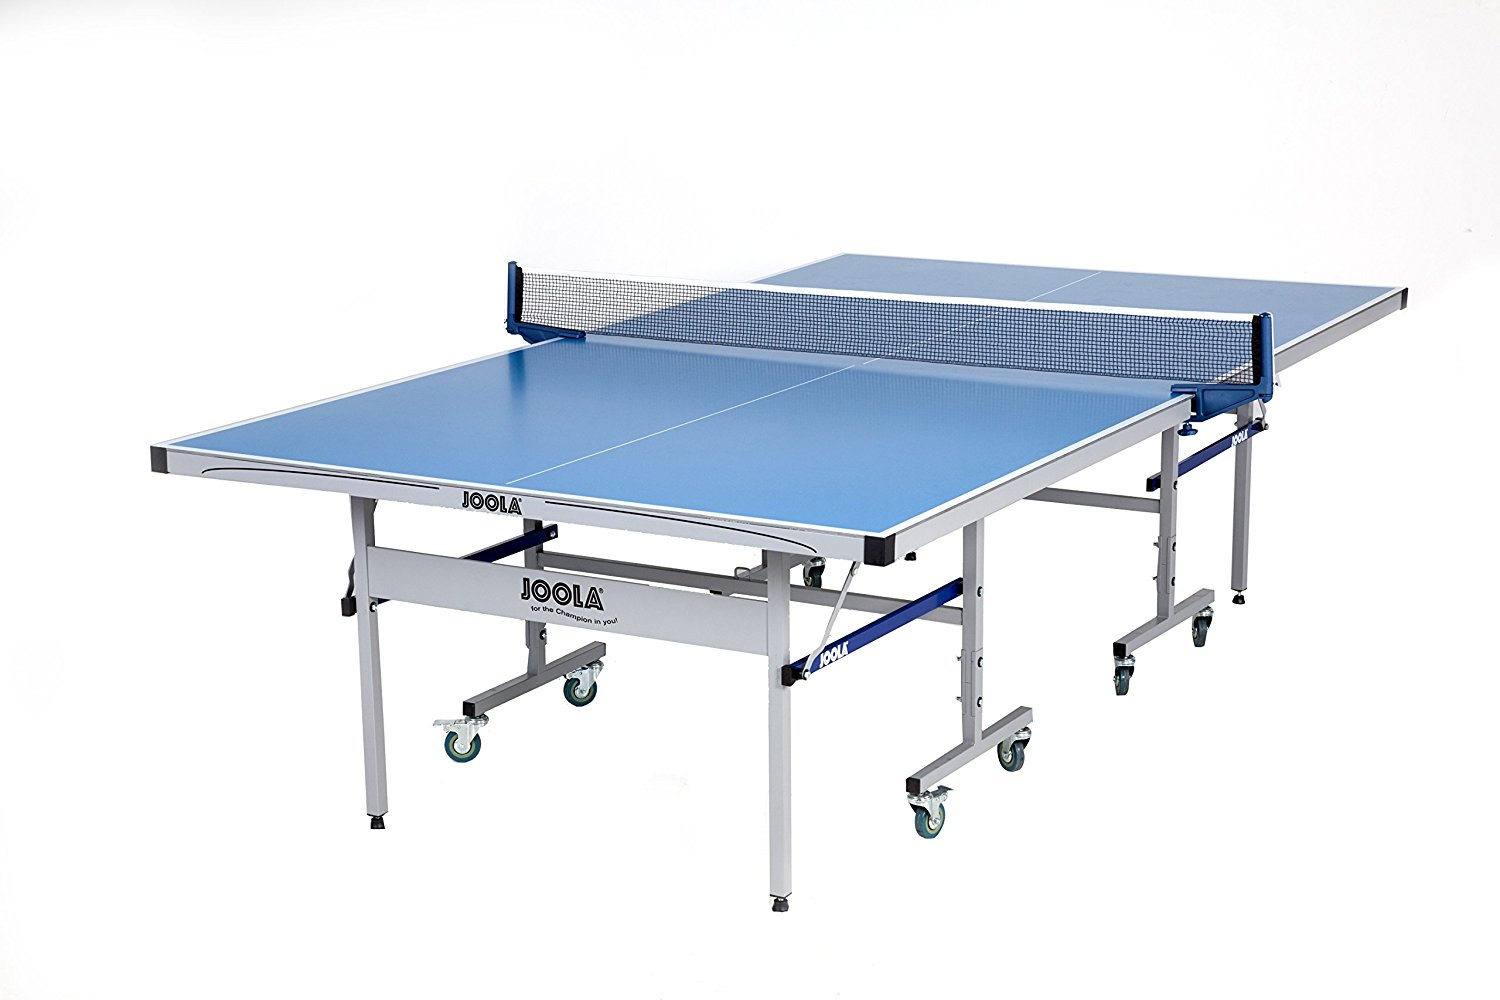 JOOLA NOVA DX Table Tennis Table